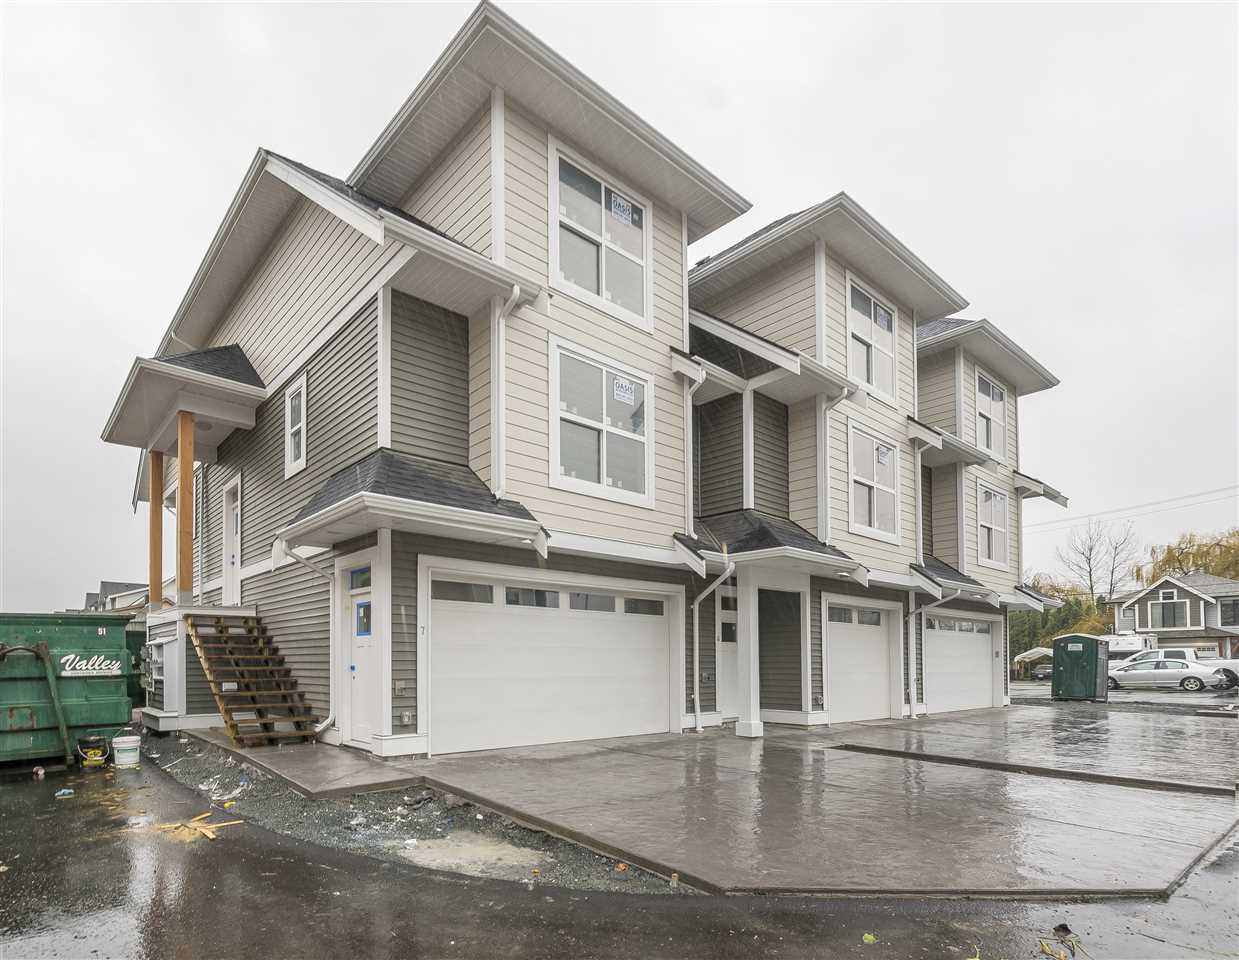 One of the nicest townhouse complexes on the market today! Brand new construction; 11 units in total. All c/w high end finishing, full stainless steel appliance package and modern color choices. Hardy plank siding, 9' ceilings on the first and main floors, Community garden and Childrens park private in the complex. West side of Chilliwack, located near Prospera centre, Hospital, Leisure centre, Arts centre, Skate park and Shopping. Options for Built in vac, Central air conditioning, and Barbeque box. Estimated completion November 2017.